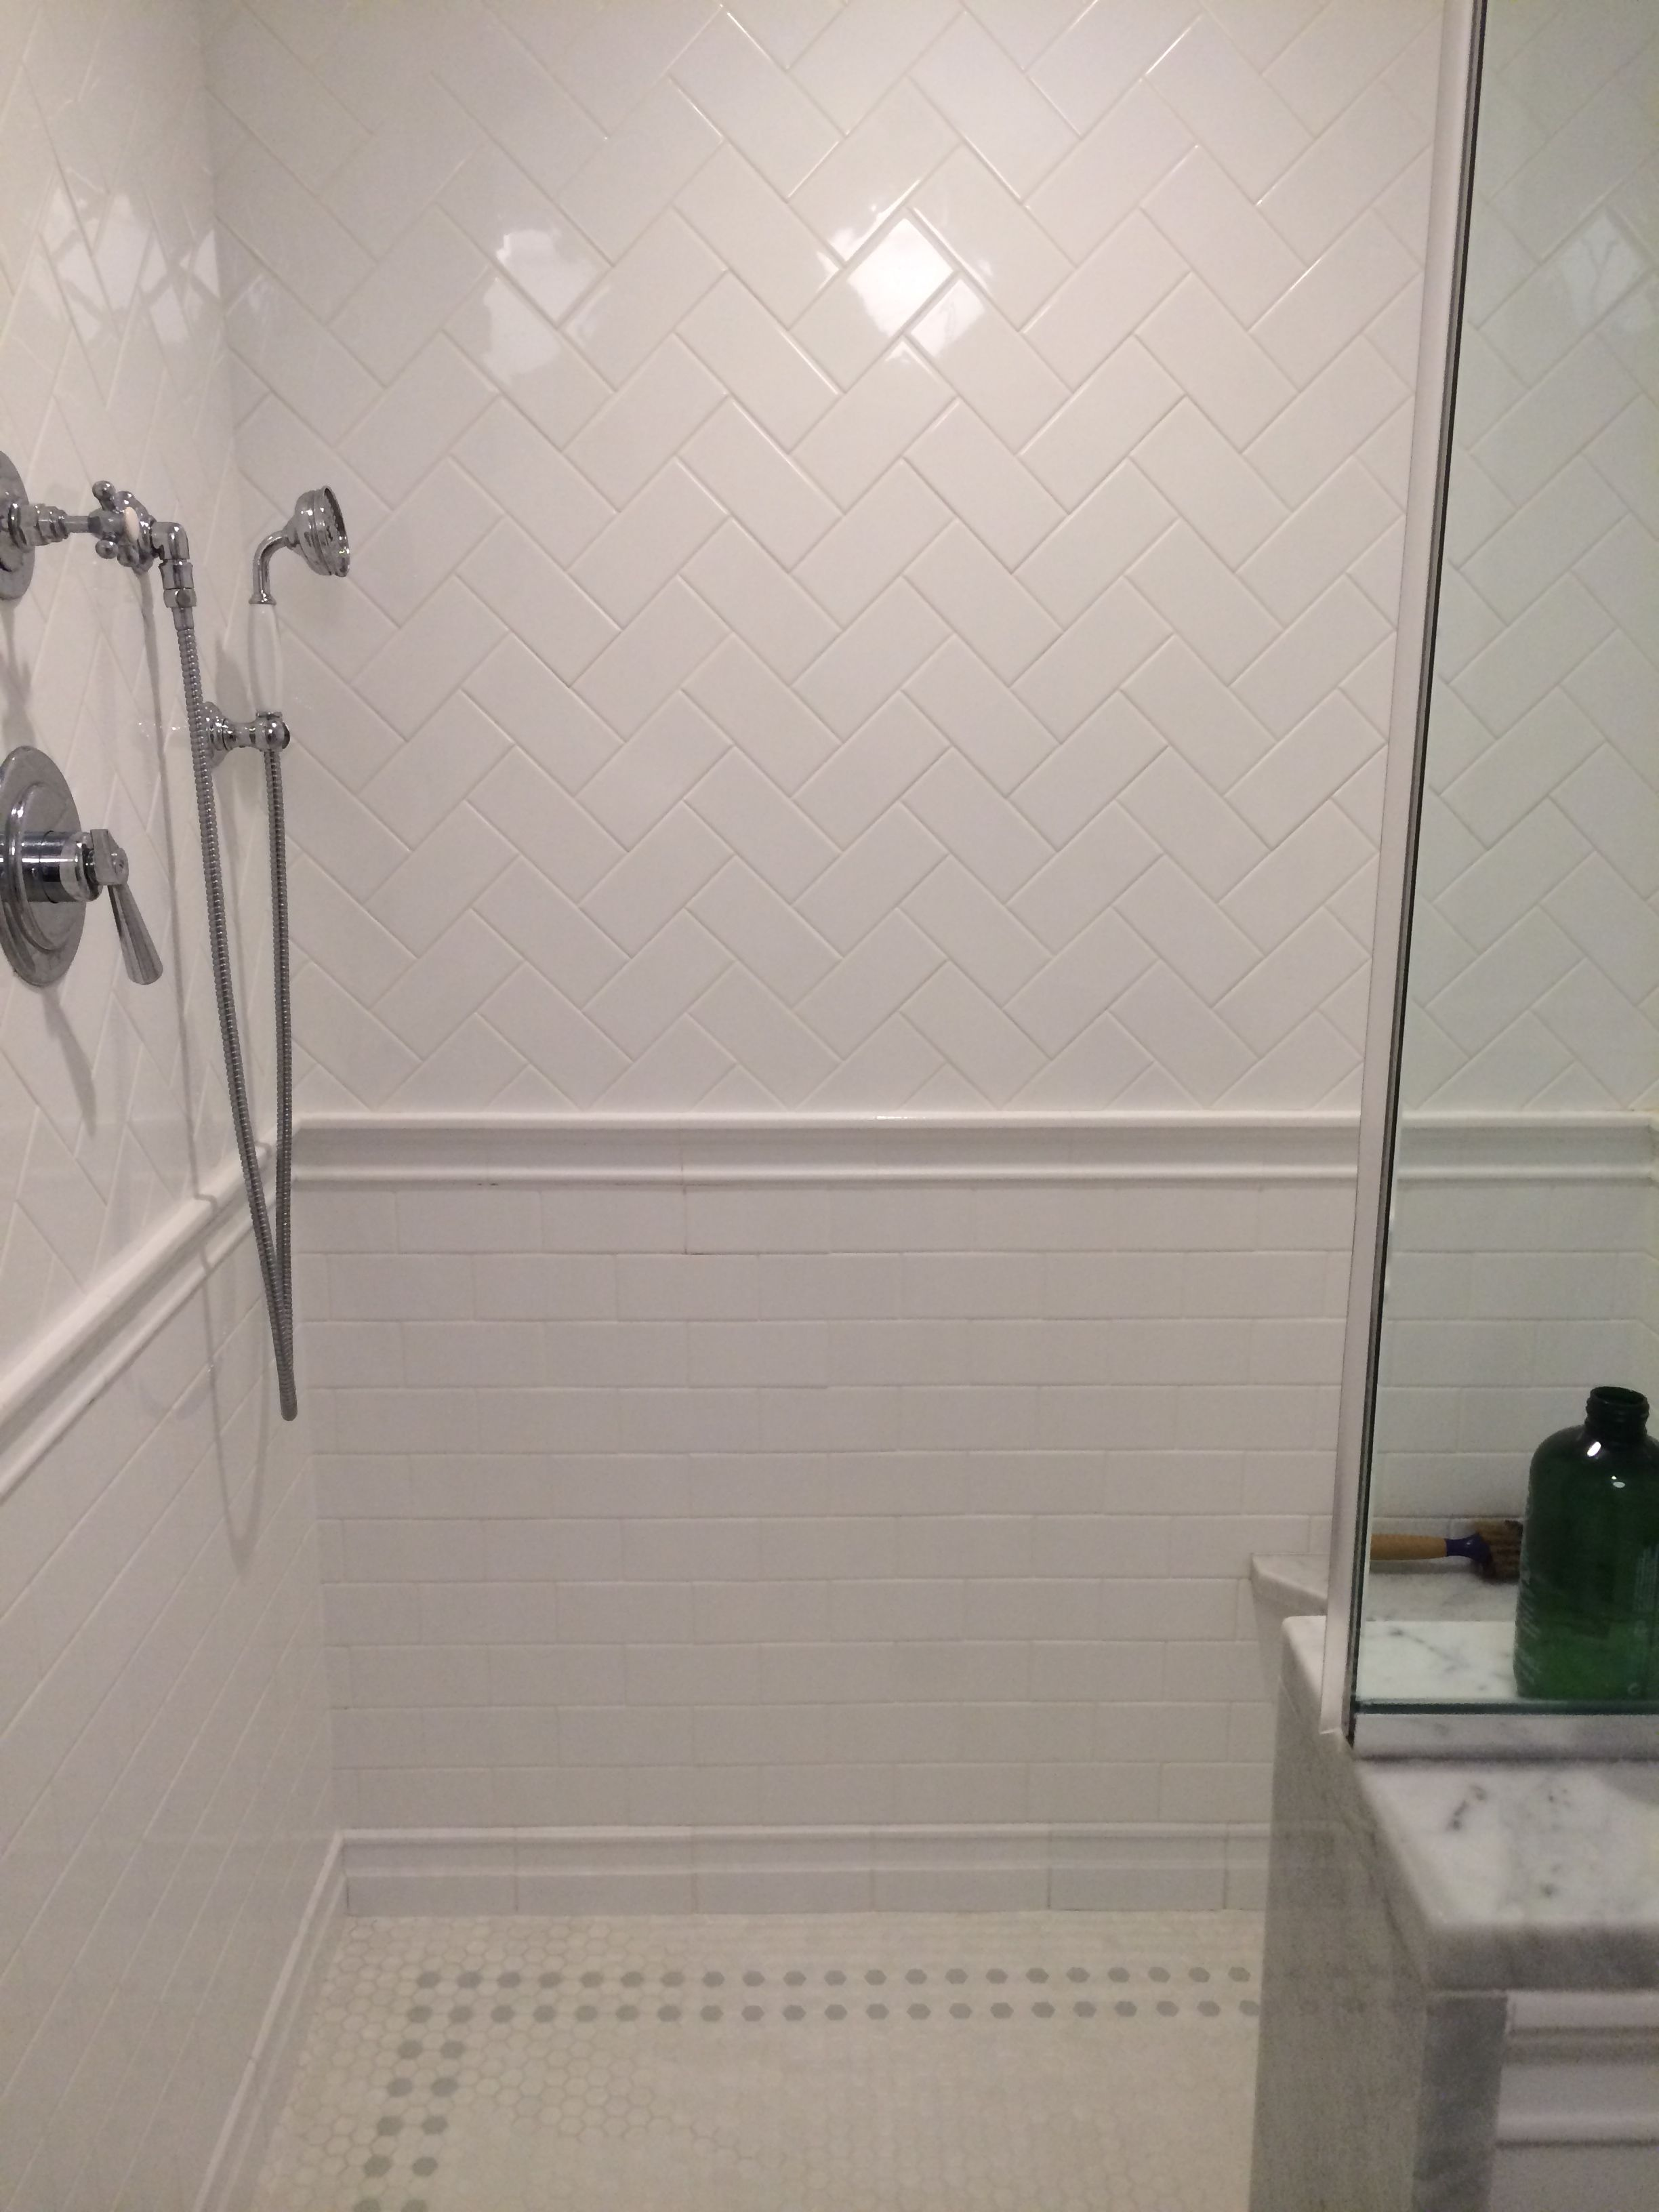 Herringbone subway tile bathrooms pinterest for Subway tiles for bathroom shower